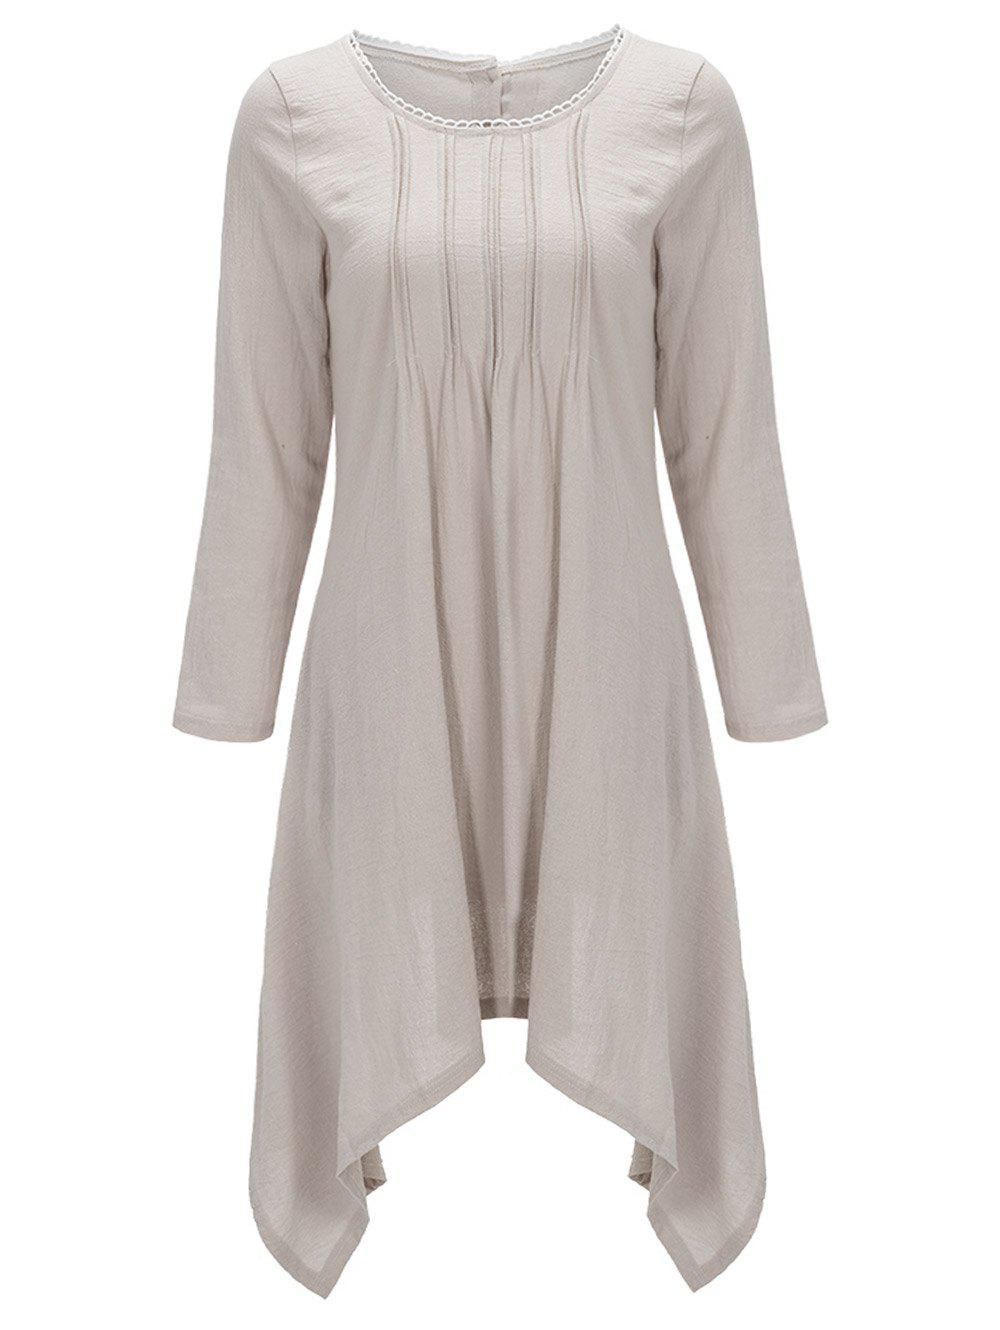 Asymétrique Bouton Back Up Robe Tunique - Café Clair S